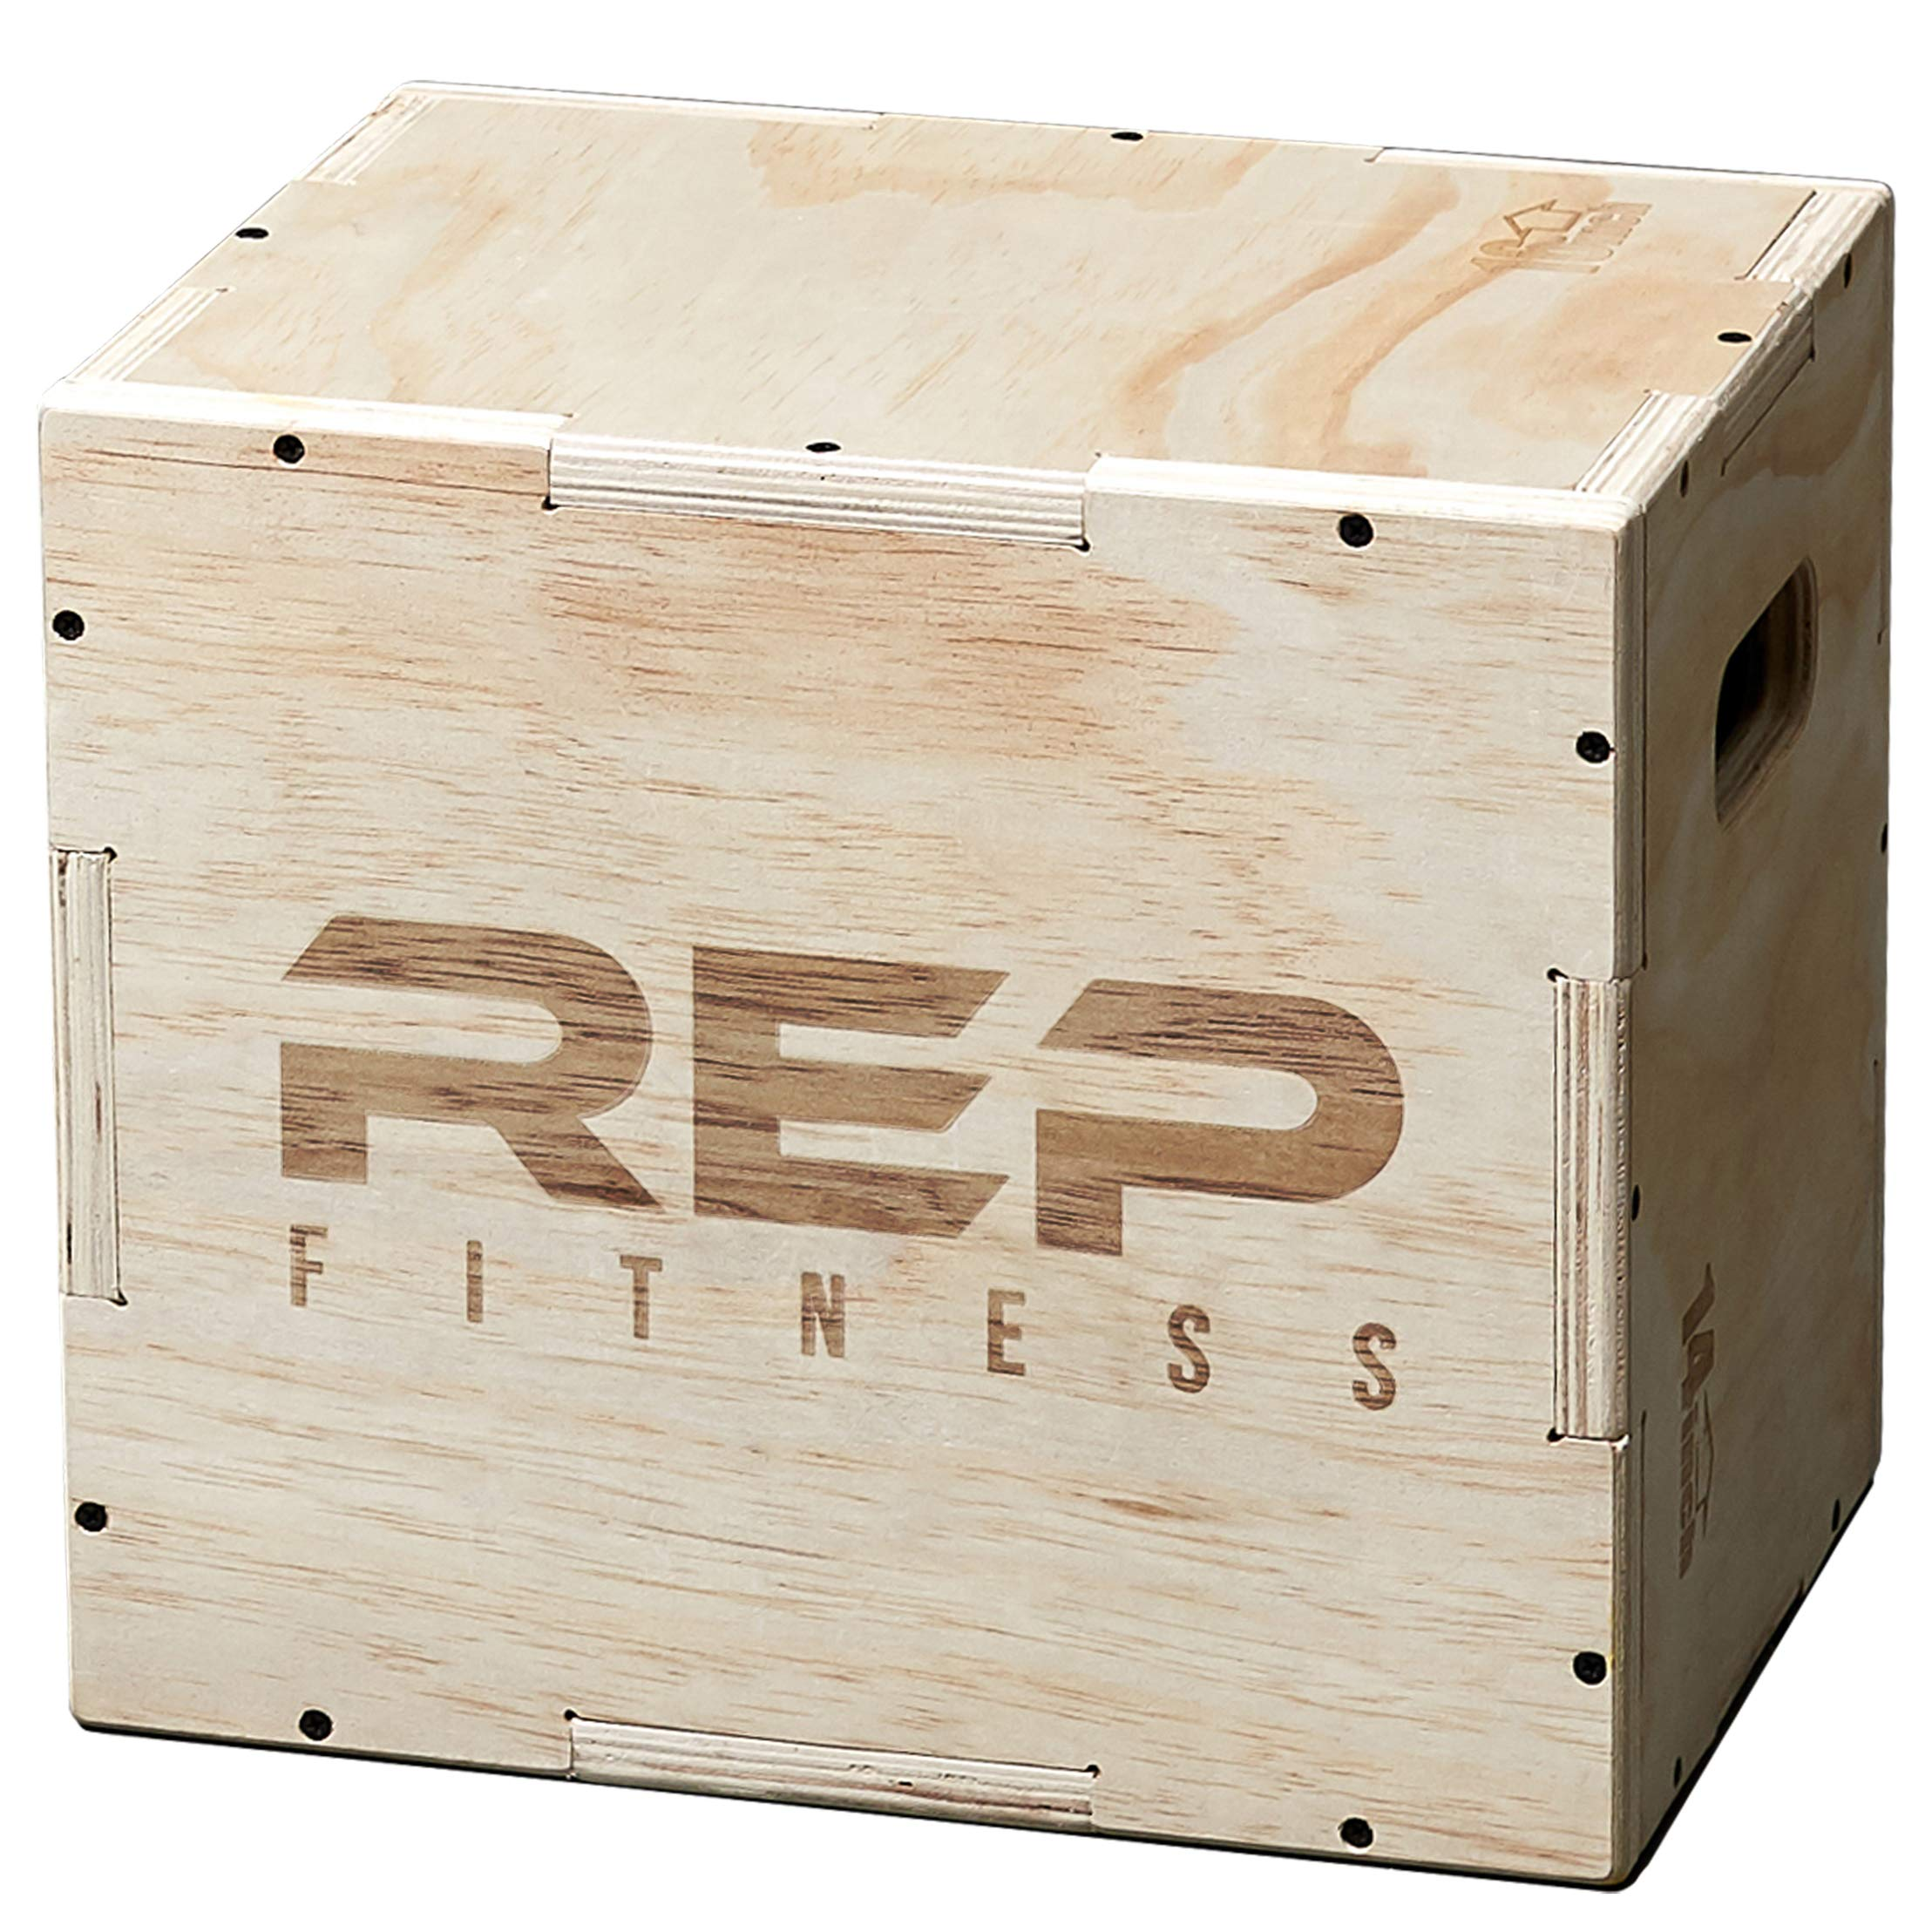 Rep 3 in 1 Wood Plyometric Box for Jump Training and Conditioning 16/14/12 by REP FITNESS